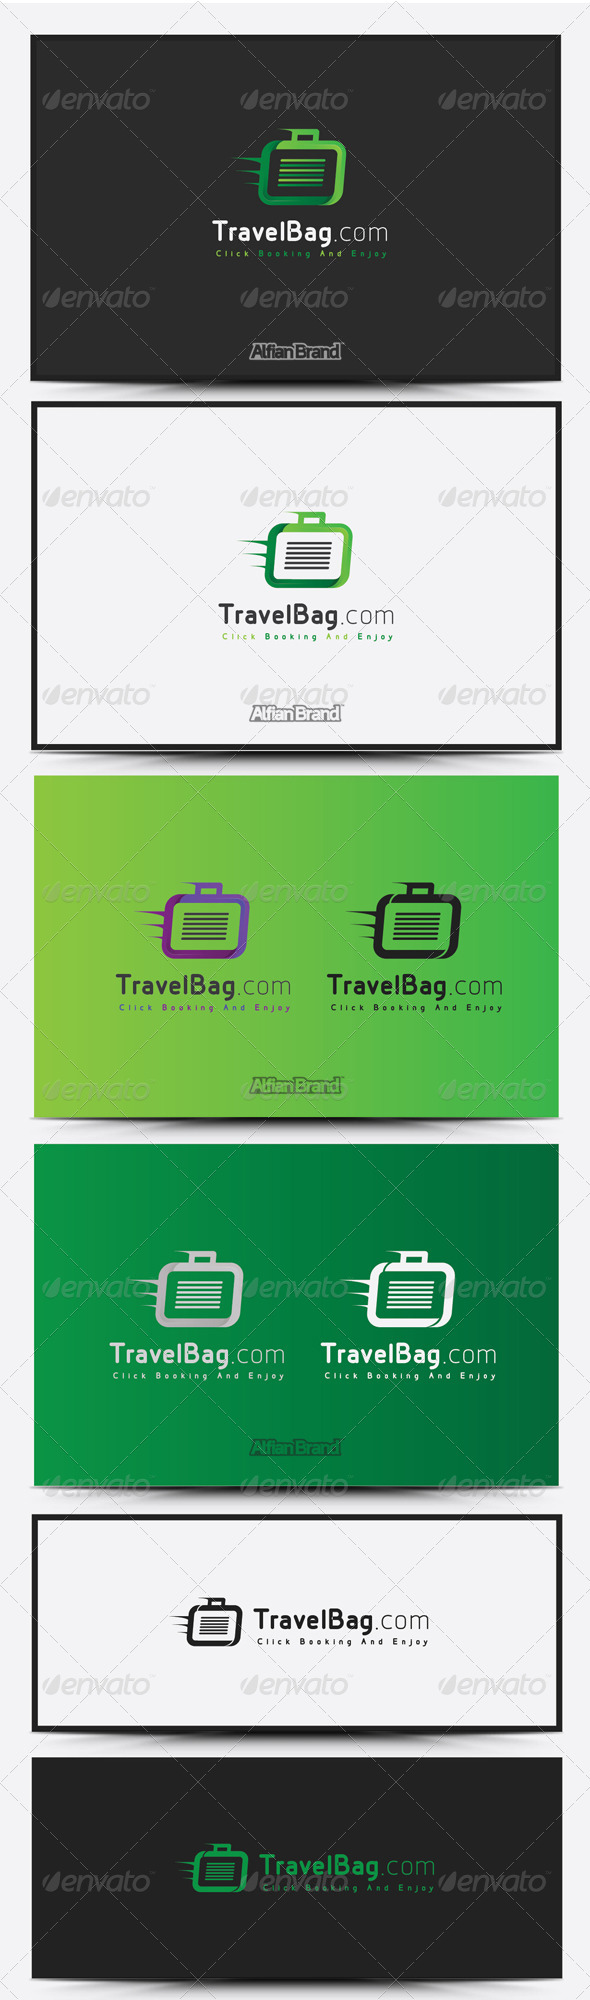 GraphicRiver Travel Bag Logo 8515353